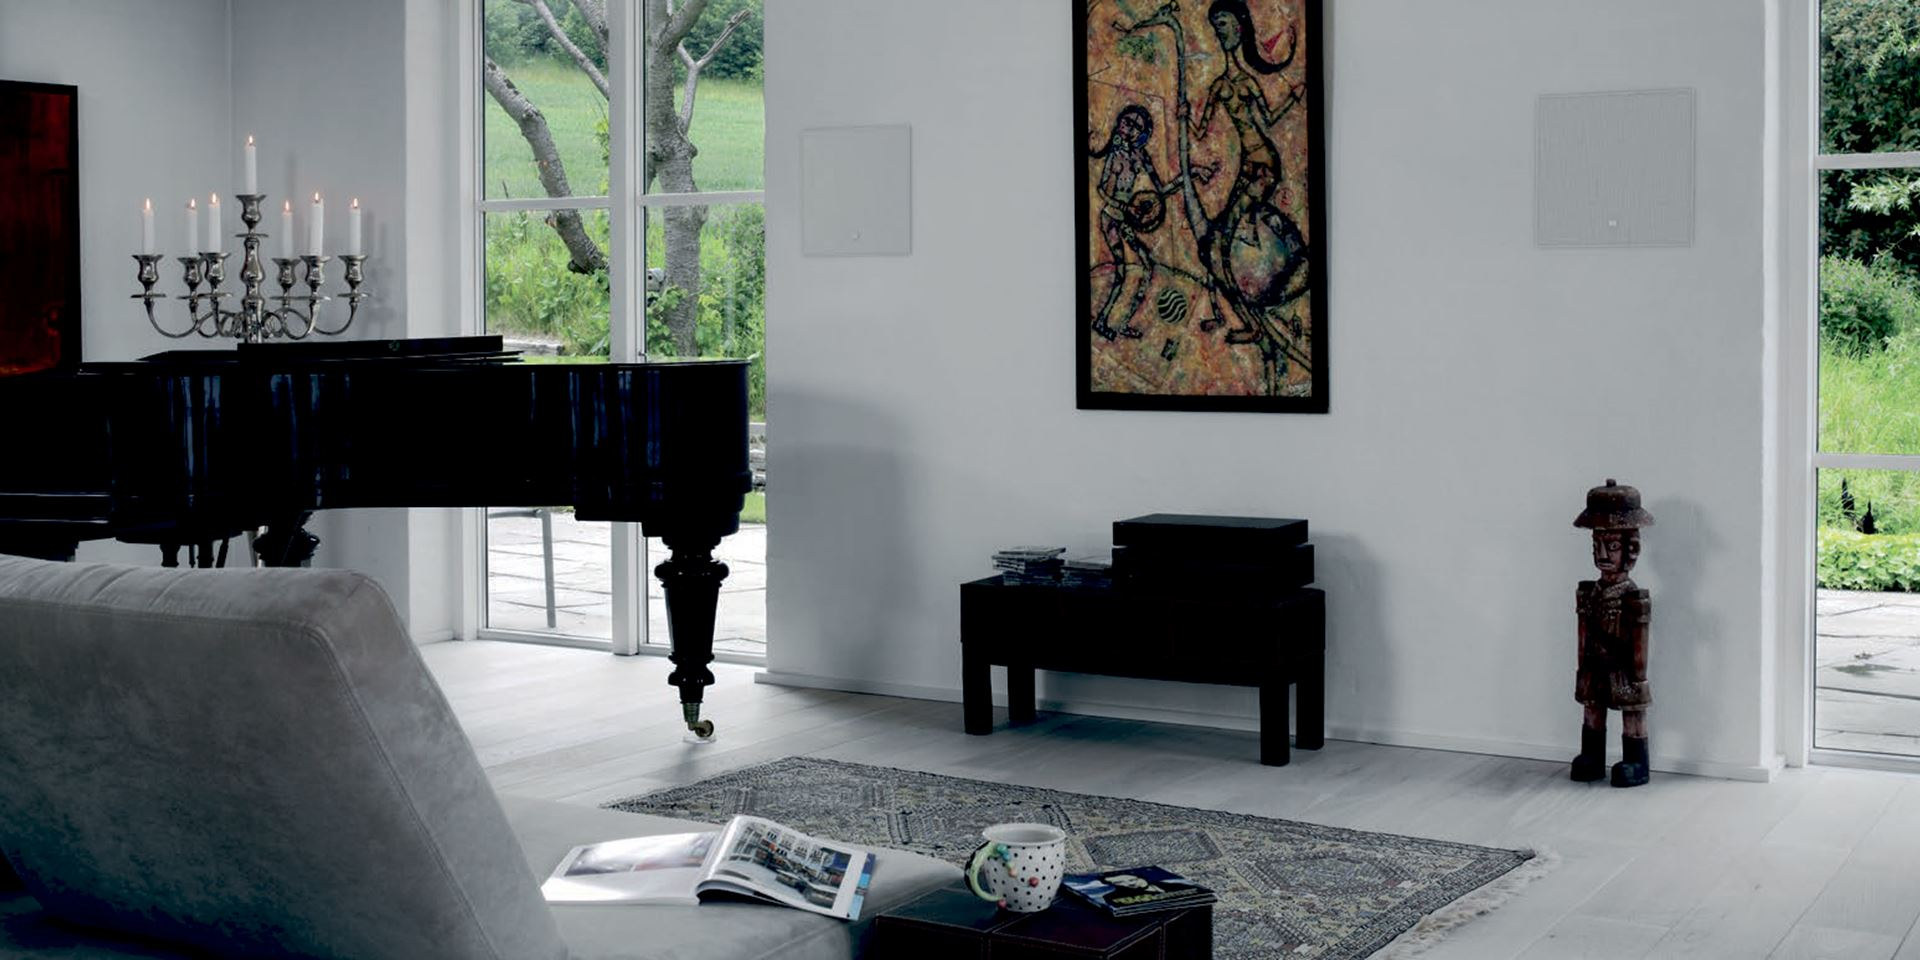 Two white Speakers in-wall in a modern house next to a black piano